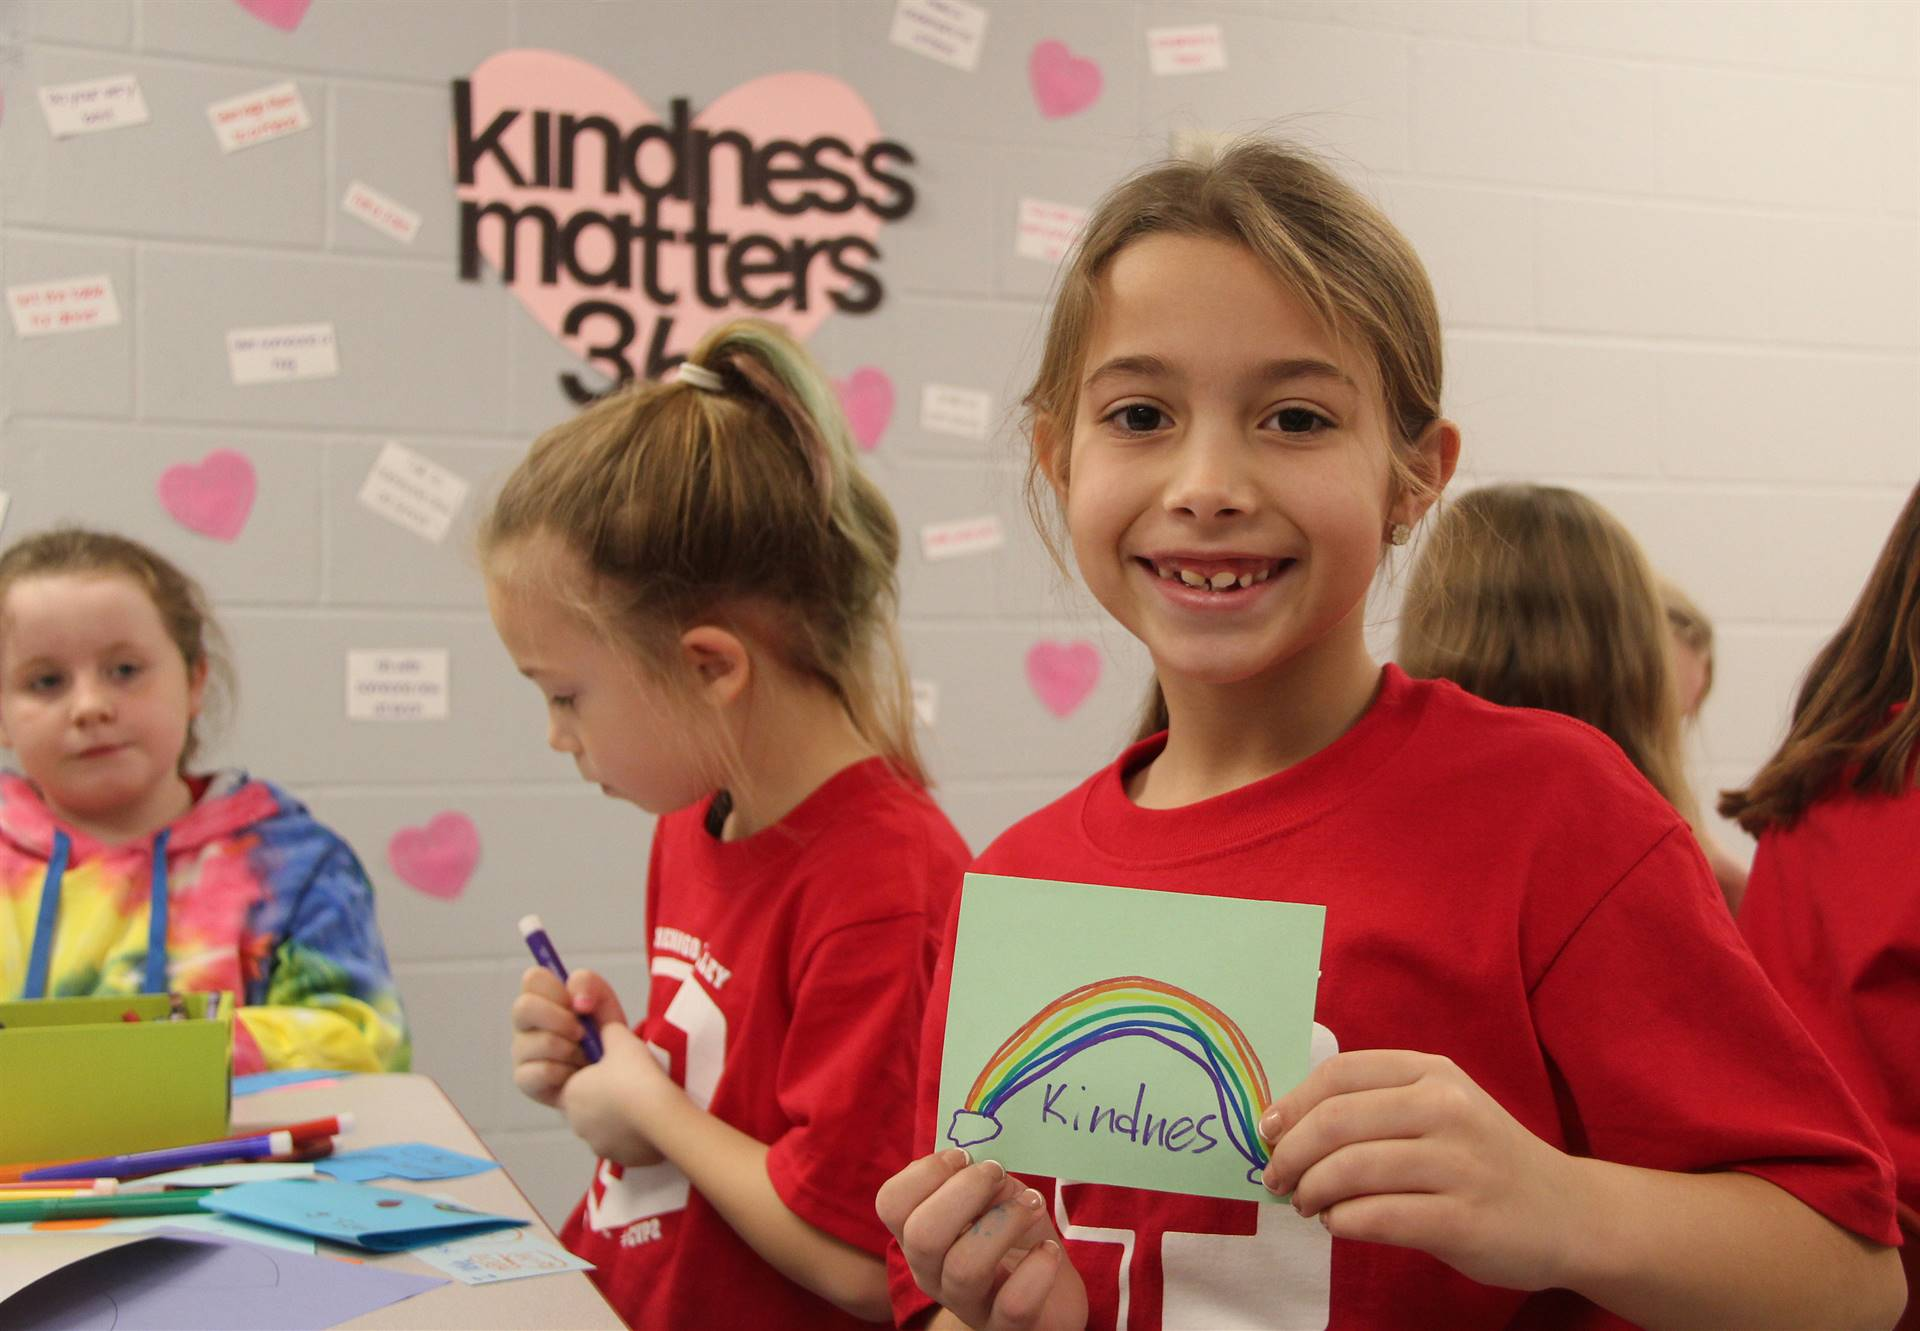 student holding kindness card